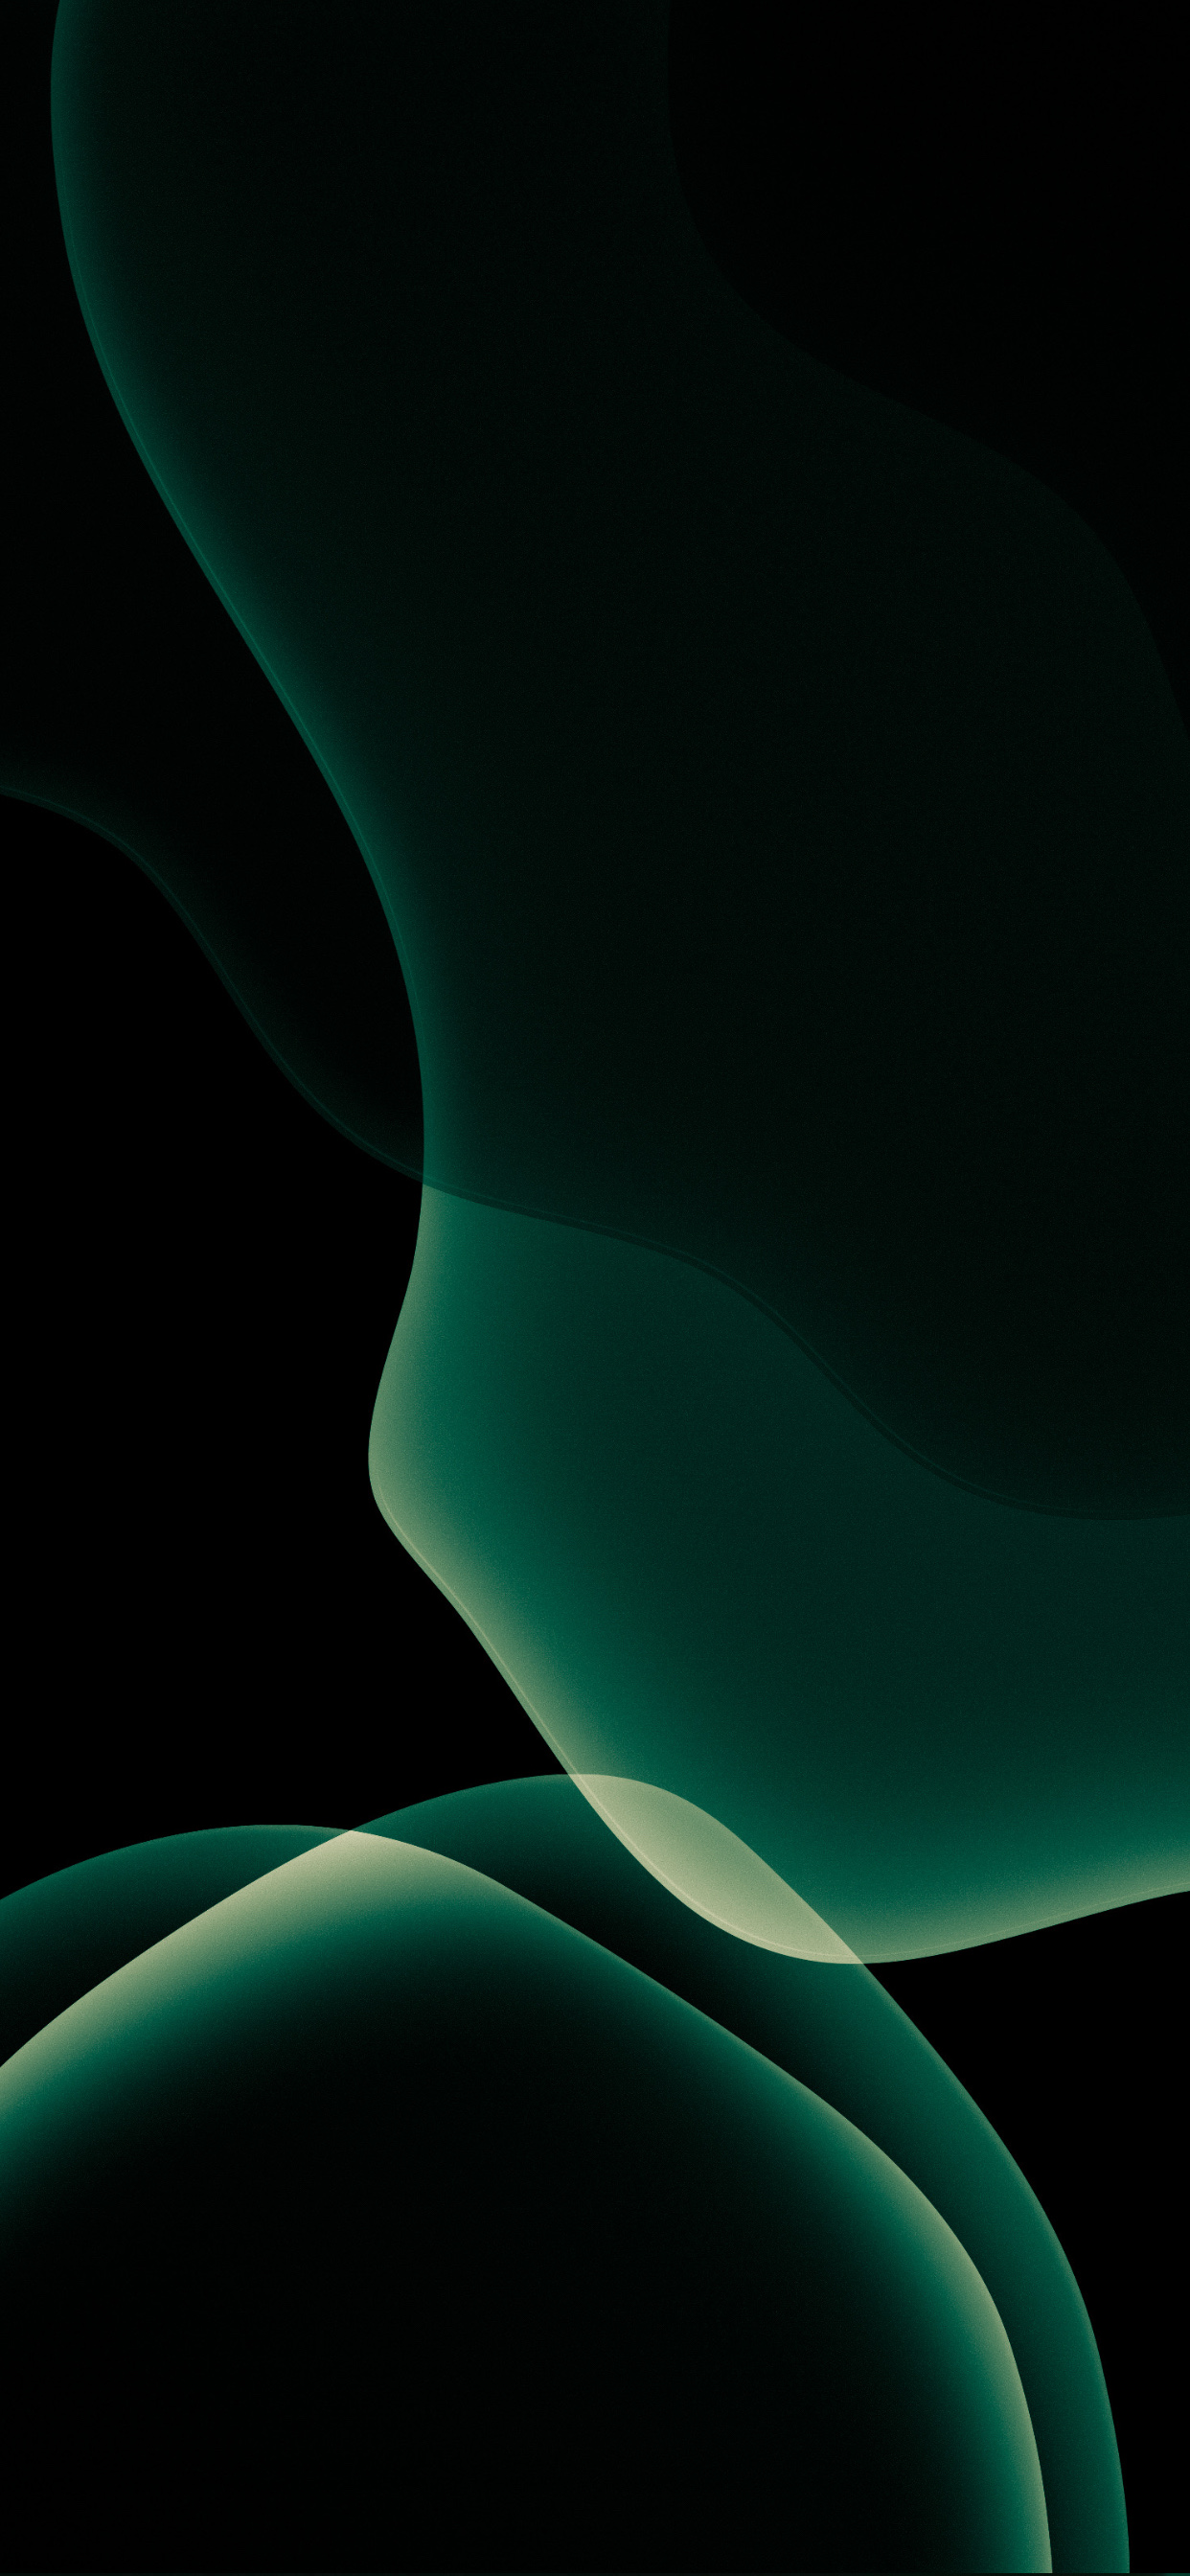 iOS 13 iPhone 11 Pro wallpaper inspired ar72014